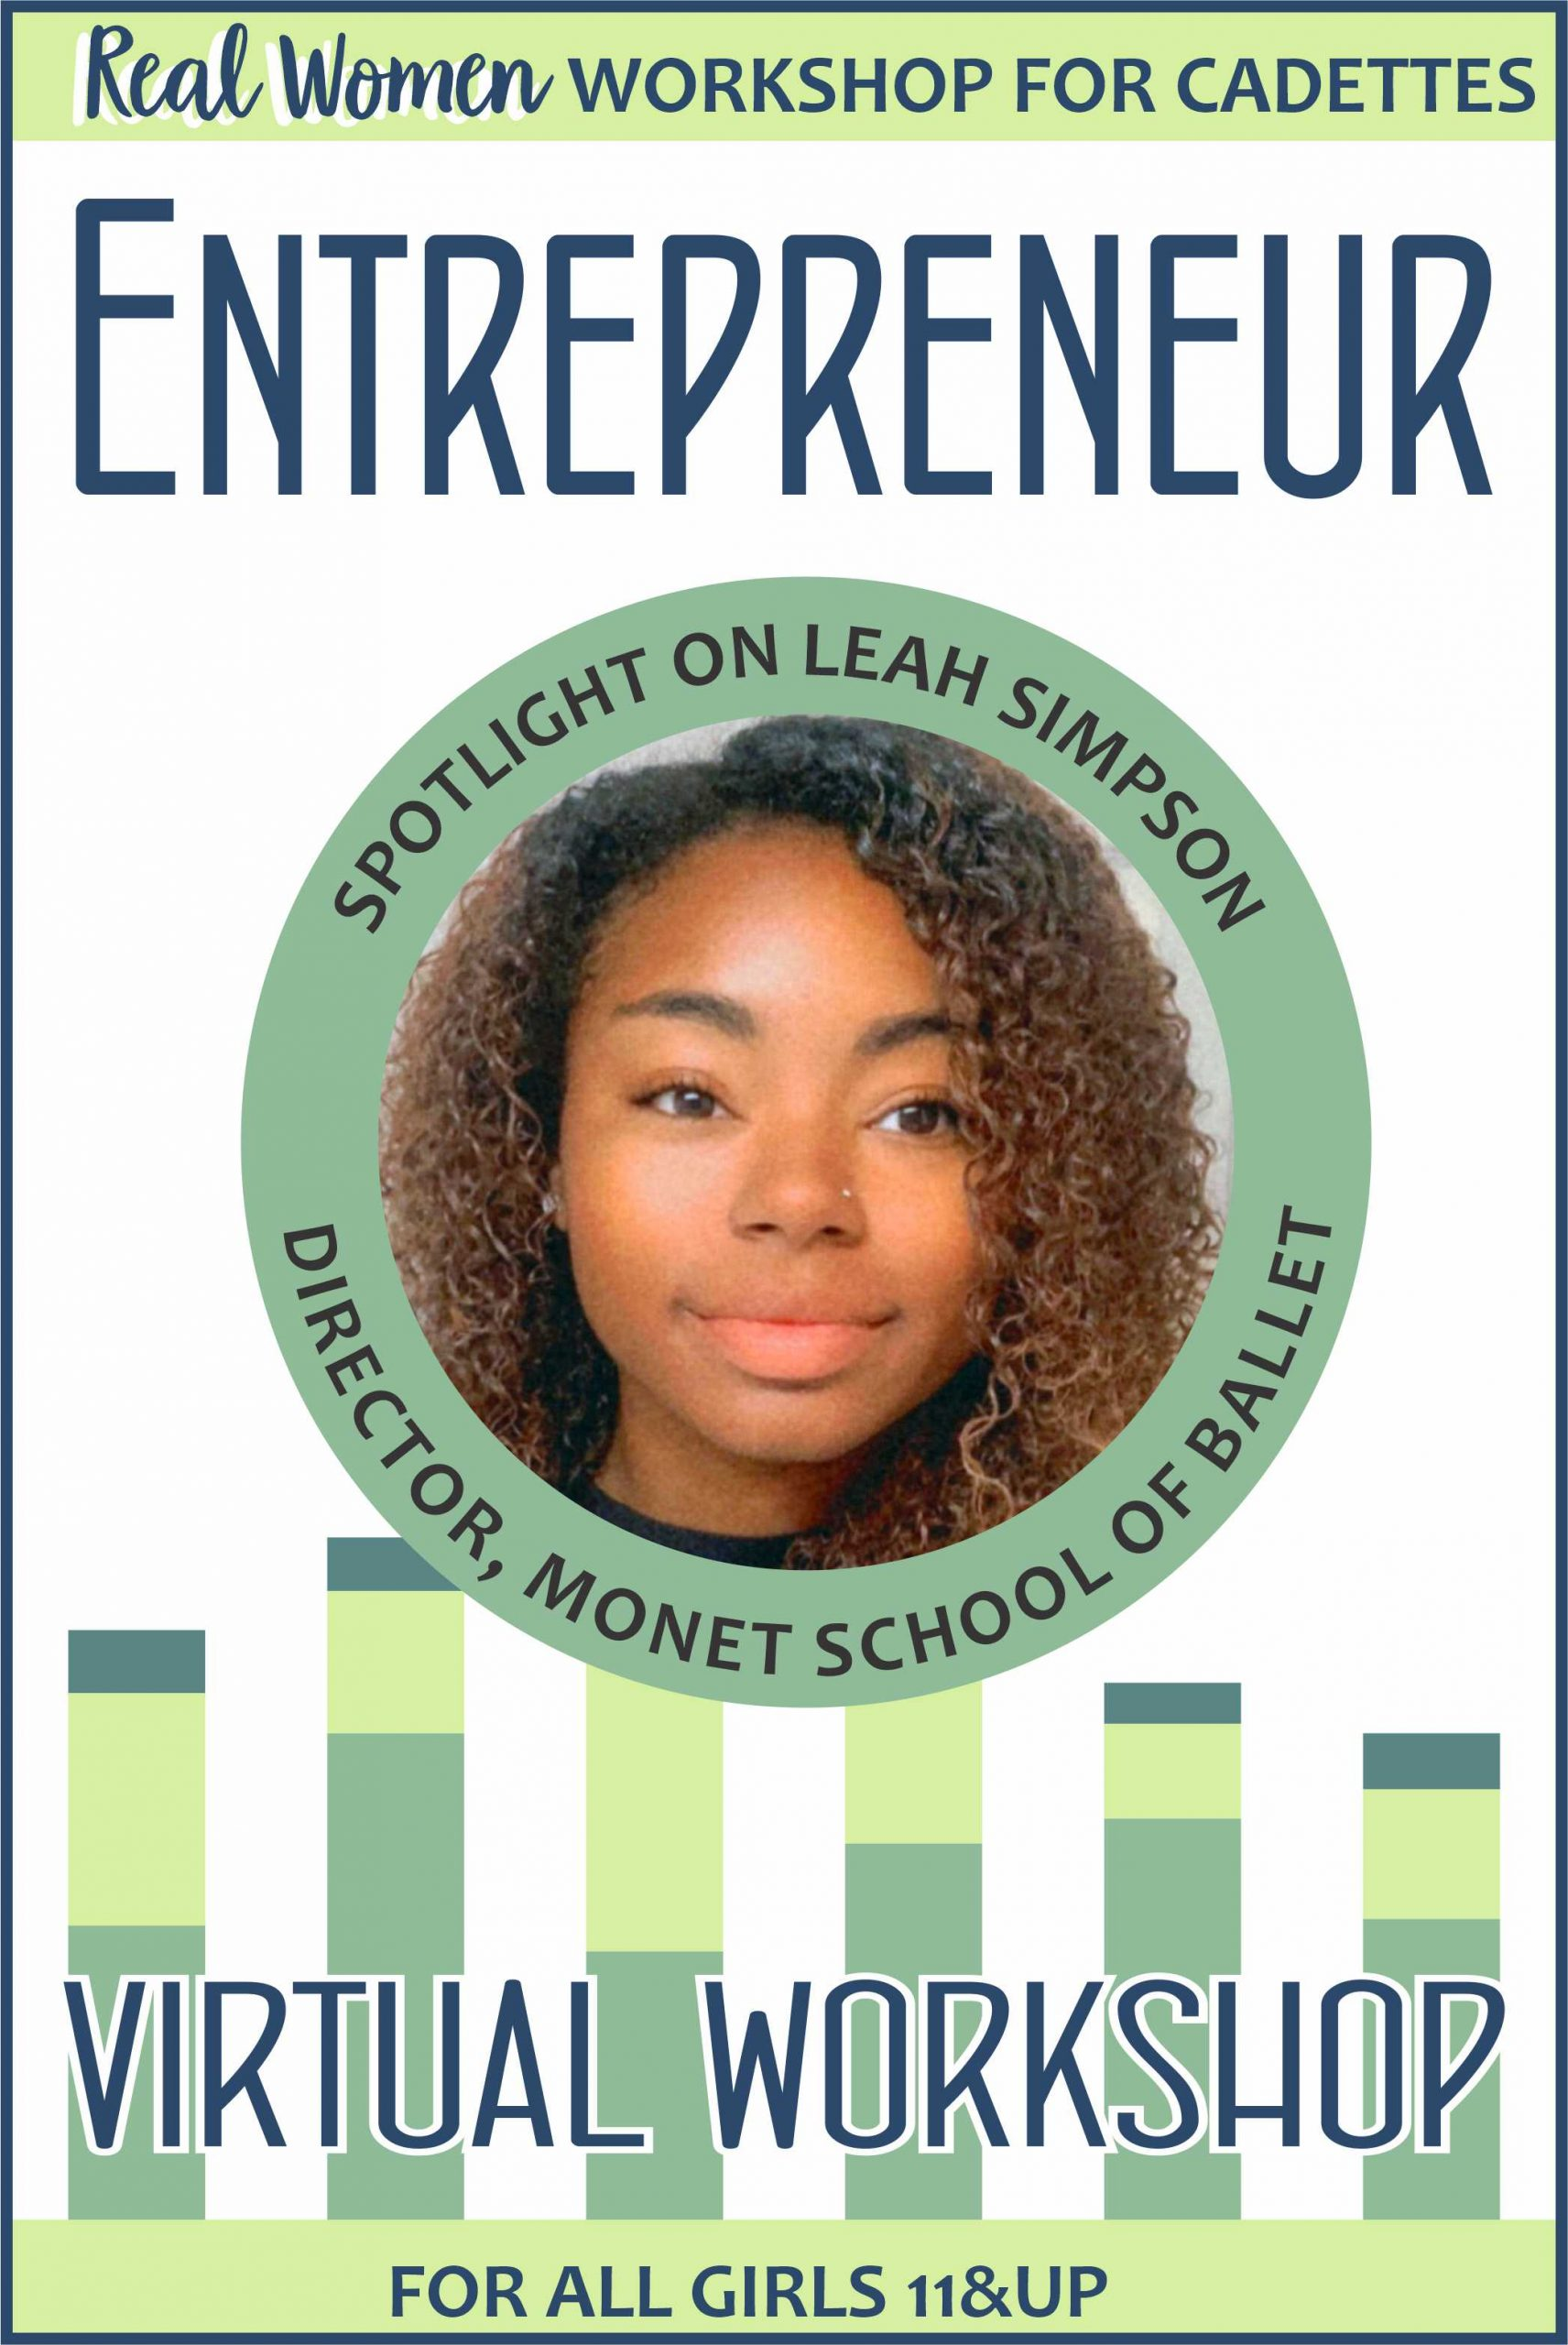 Learn about being an entrepreneur and how Leah Simpson founded the Monet School of Ballet! #makingfriends #entrepreneur #business #girlscoutcadettes #cadettes #girlscouts #monetschoolofballet #professional via @gsleader411